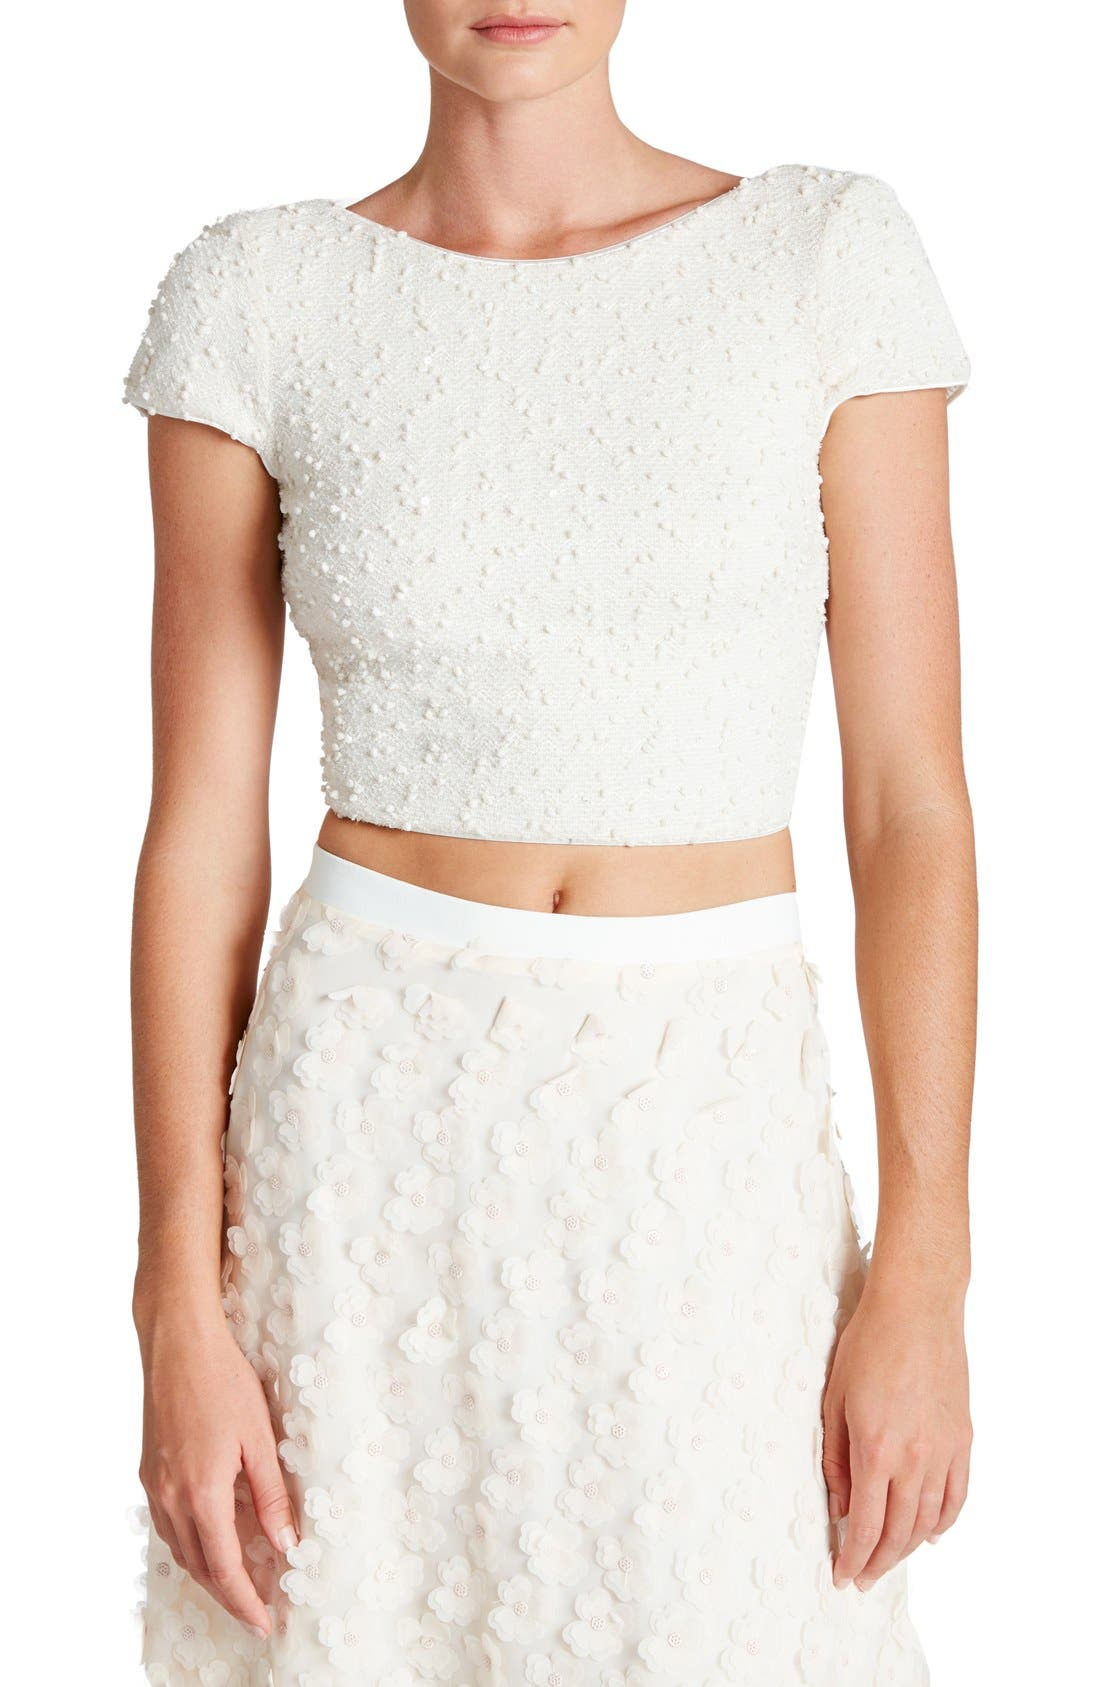 Alternate Image 1 Selected - Dress the Population 'Paloma' Sequin Knit Crop Top